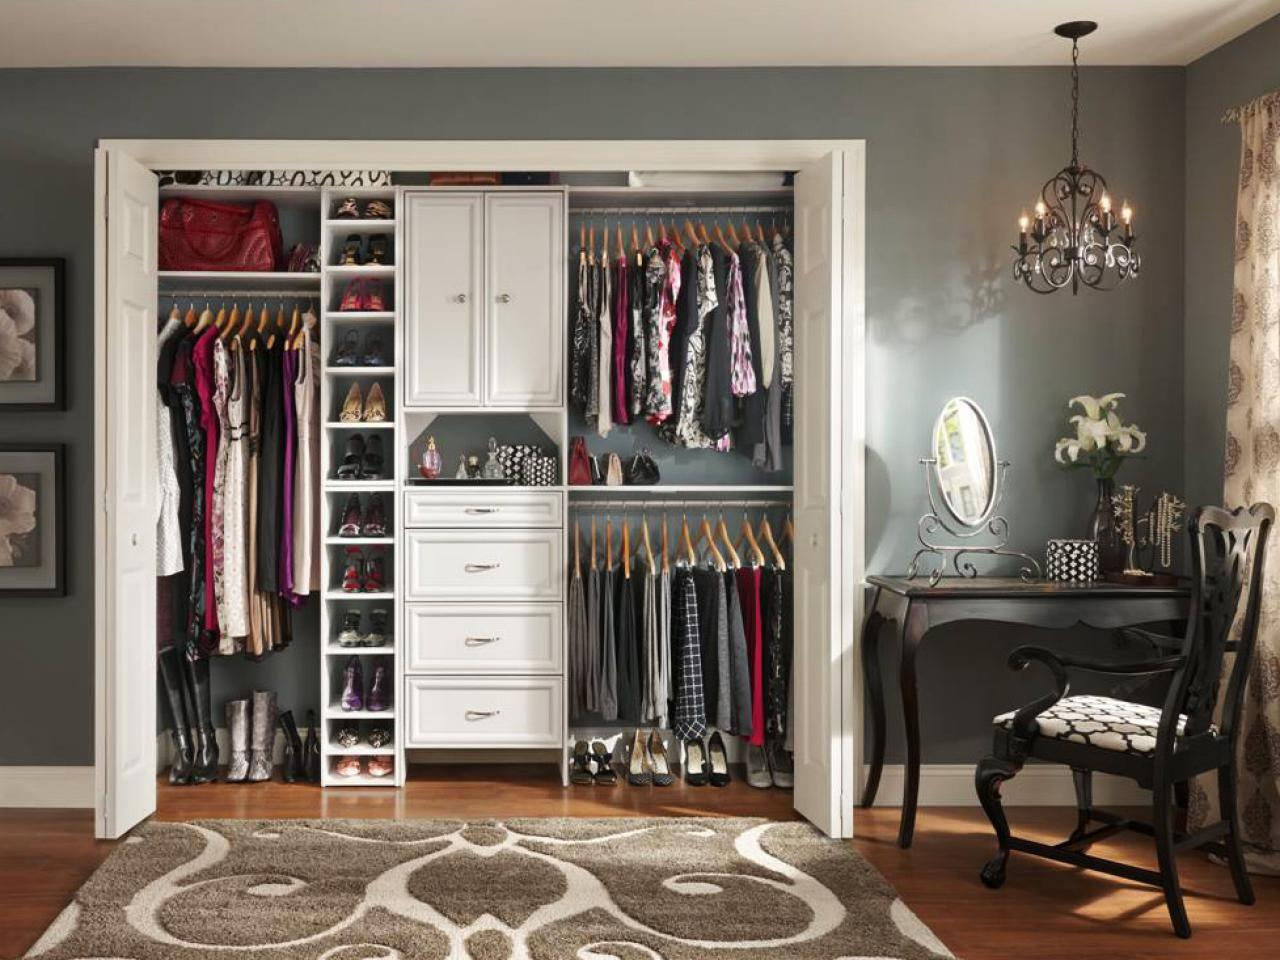 Closet Organizing Ideas Stunning Small Closet Organization Ideas Pictures Options & Tips  Hgtv Design Decoration